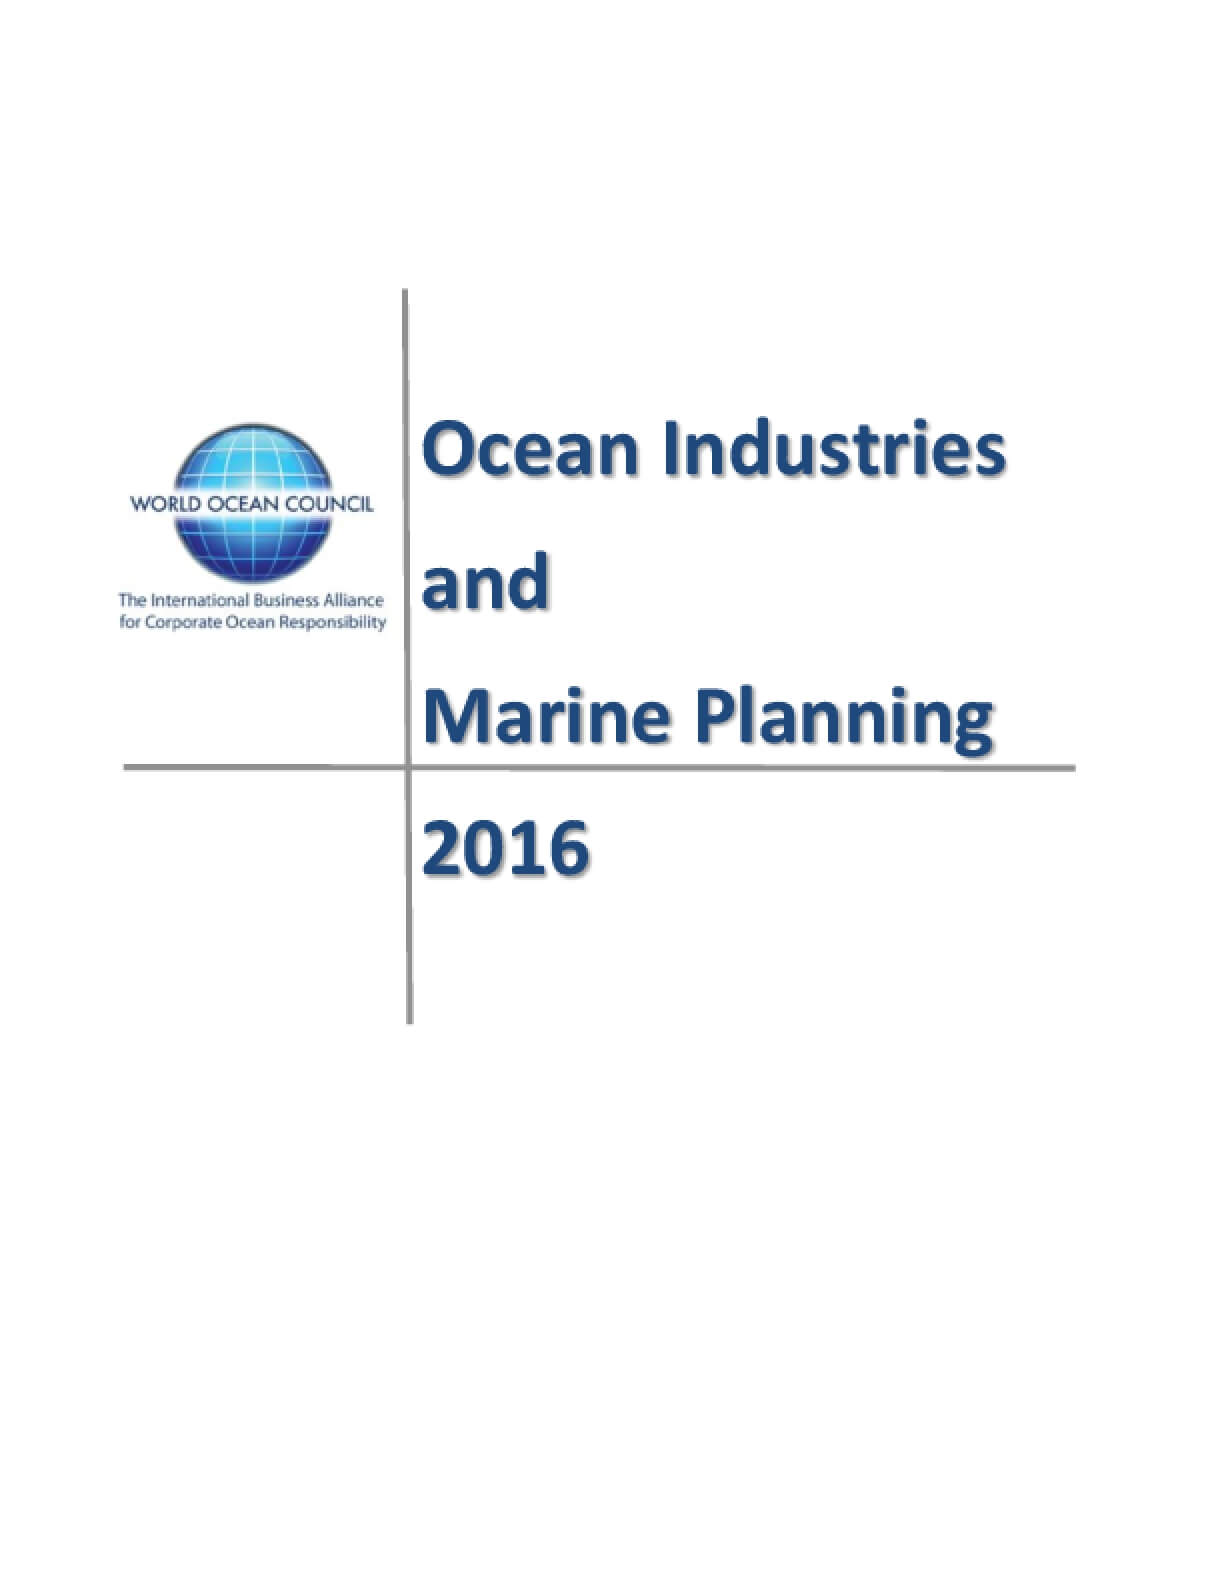 Ocean Industries and Marine Planning